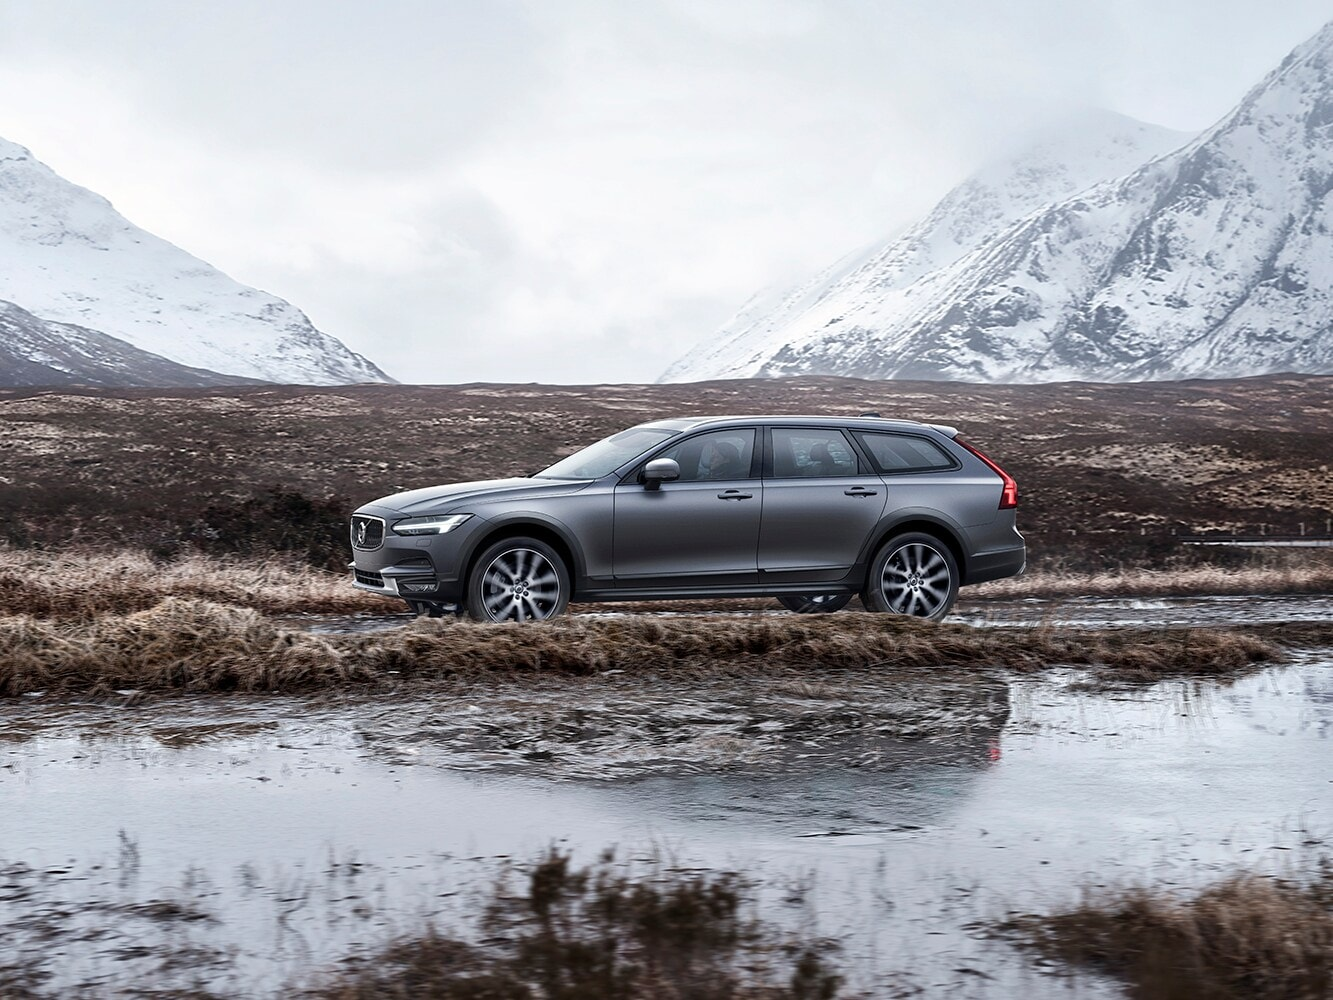 The Volvo V90 Cross Country trim parked next to a marsh